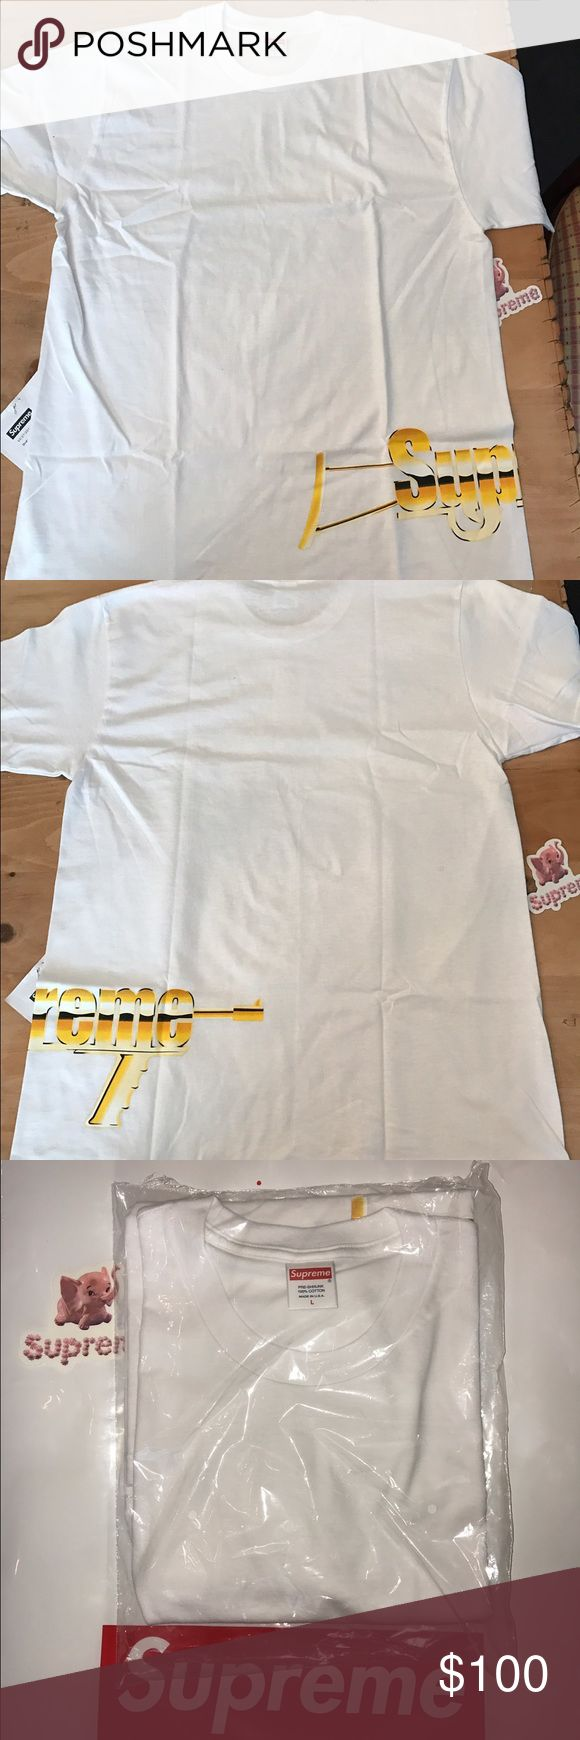 Supreme automatic tee From supreme s/s 17 brand new in plastic just took it out to show design. Hit me with an offer if interested Supreme Shirts Tees - Short Sleeve